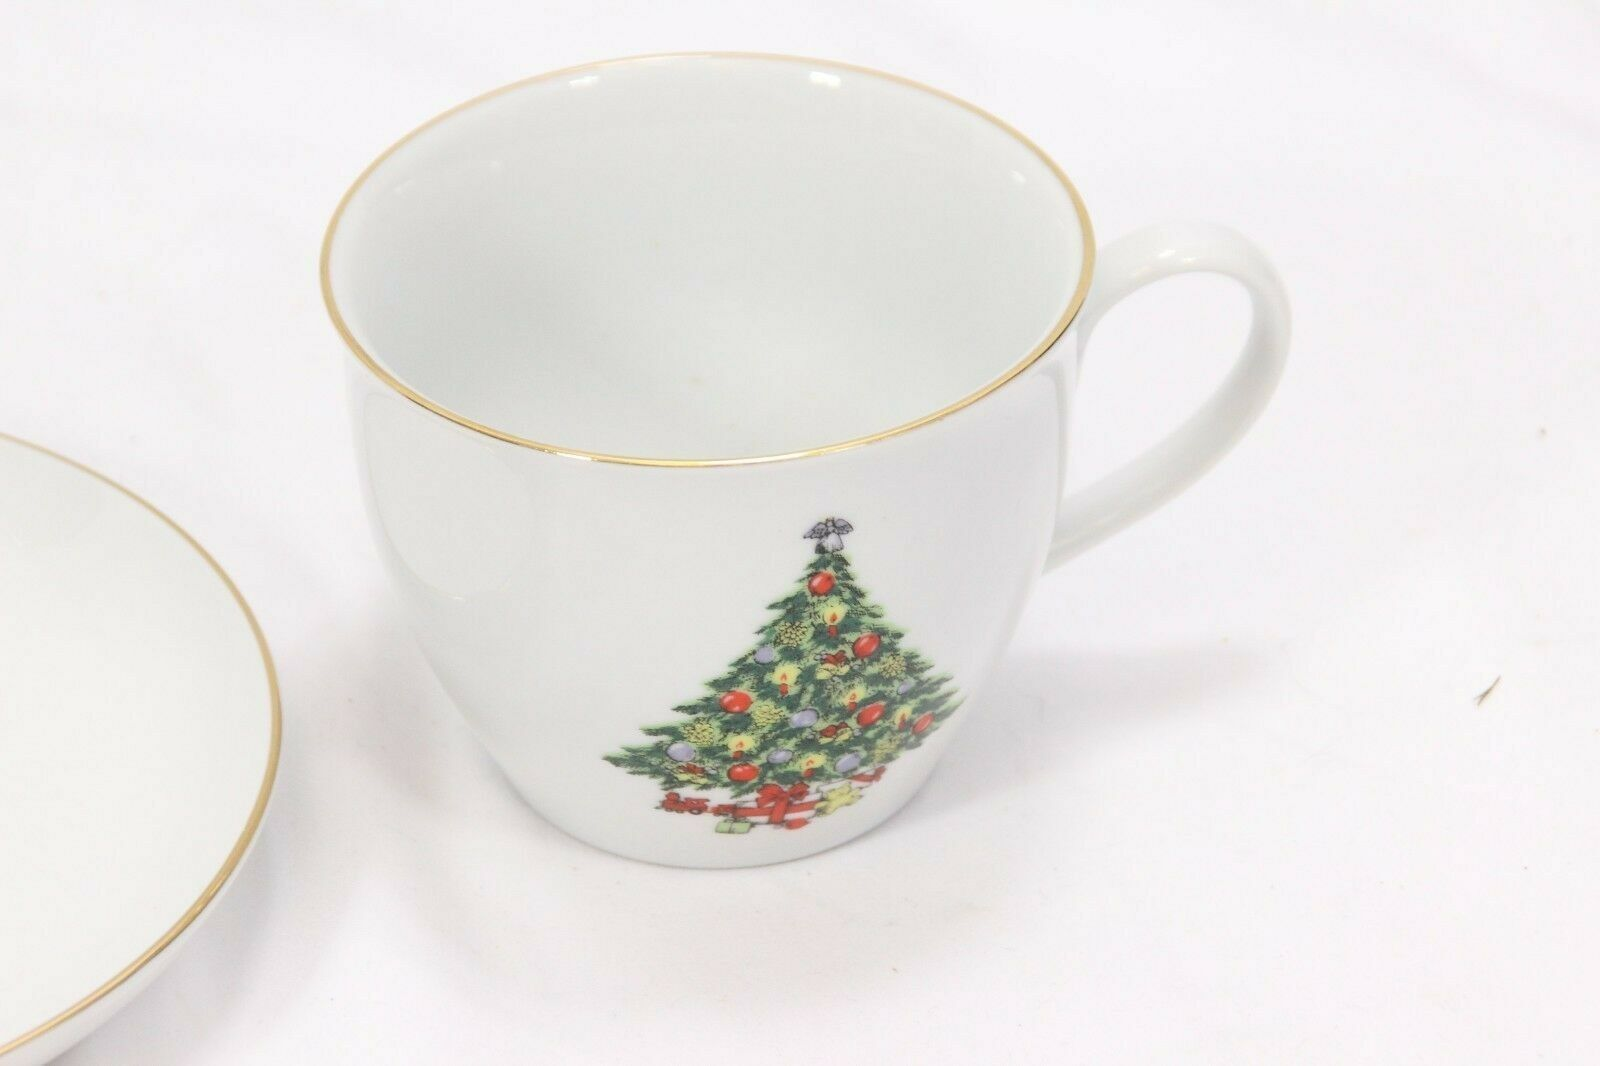 Jamestown Xmas Treasure Bowls Cups Saucers Lot of 12 image 5